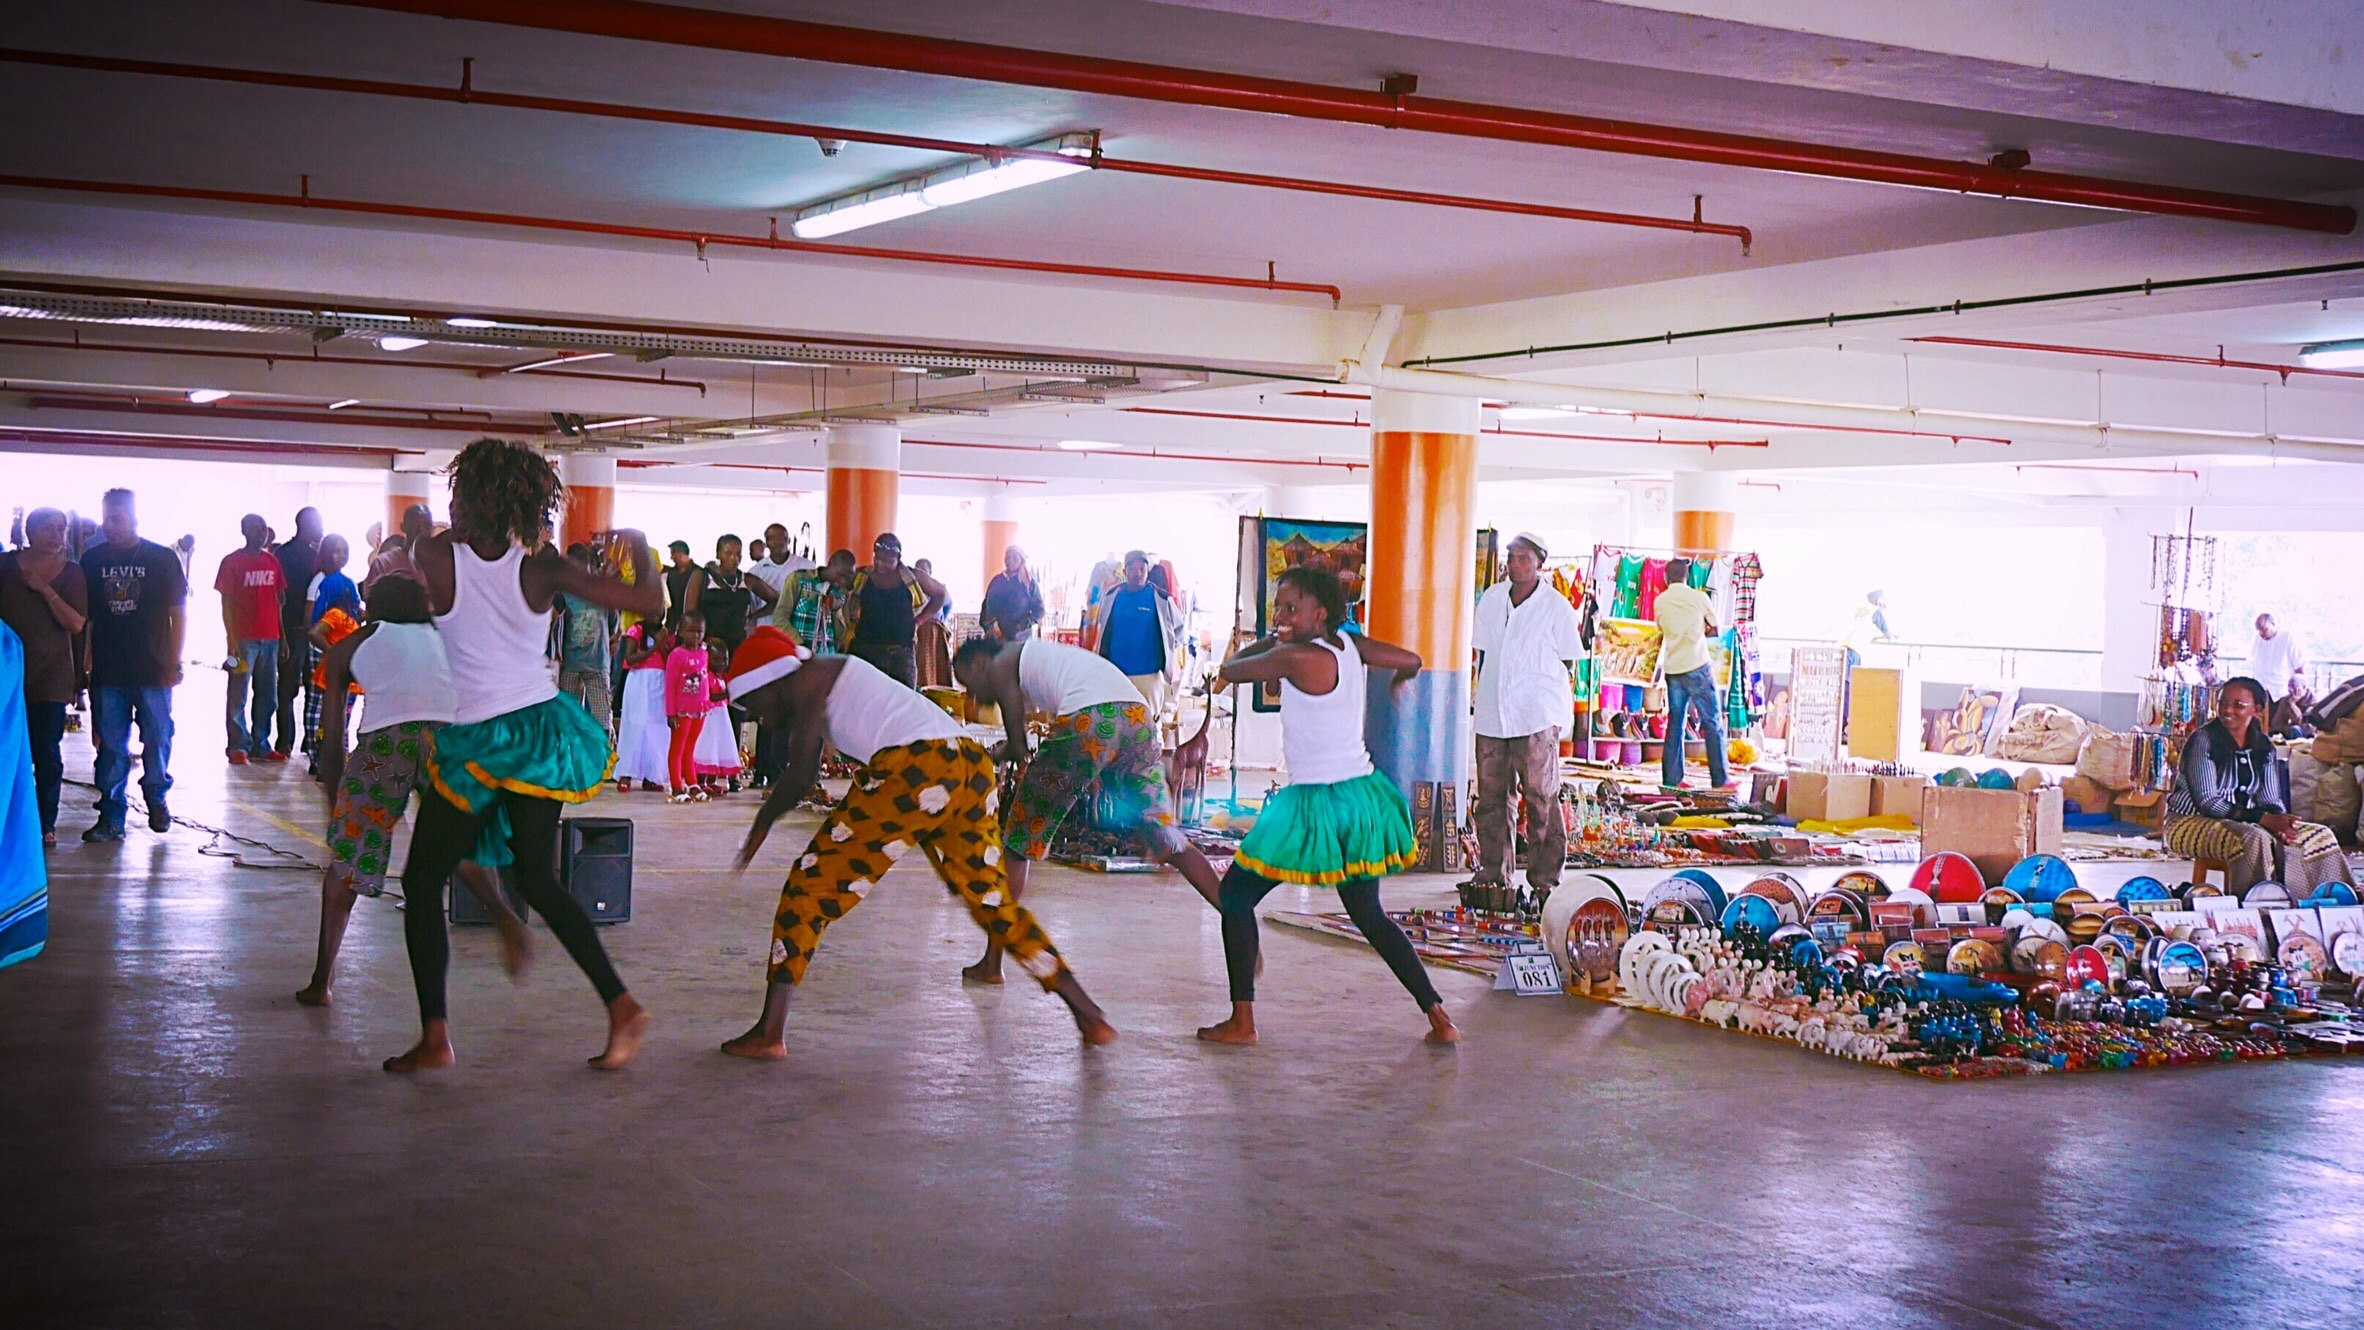 Masai market at The Junction Mall roof in Nairobi, Kenya